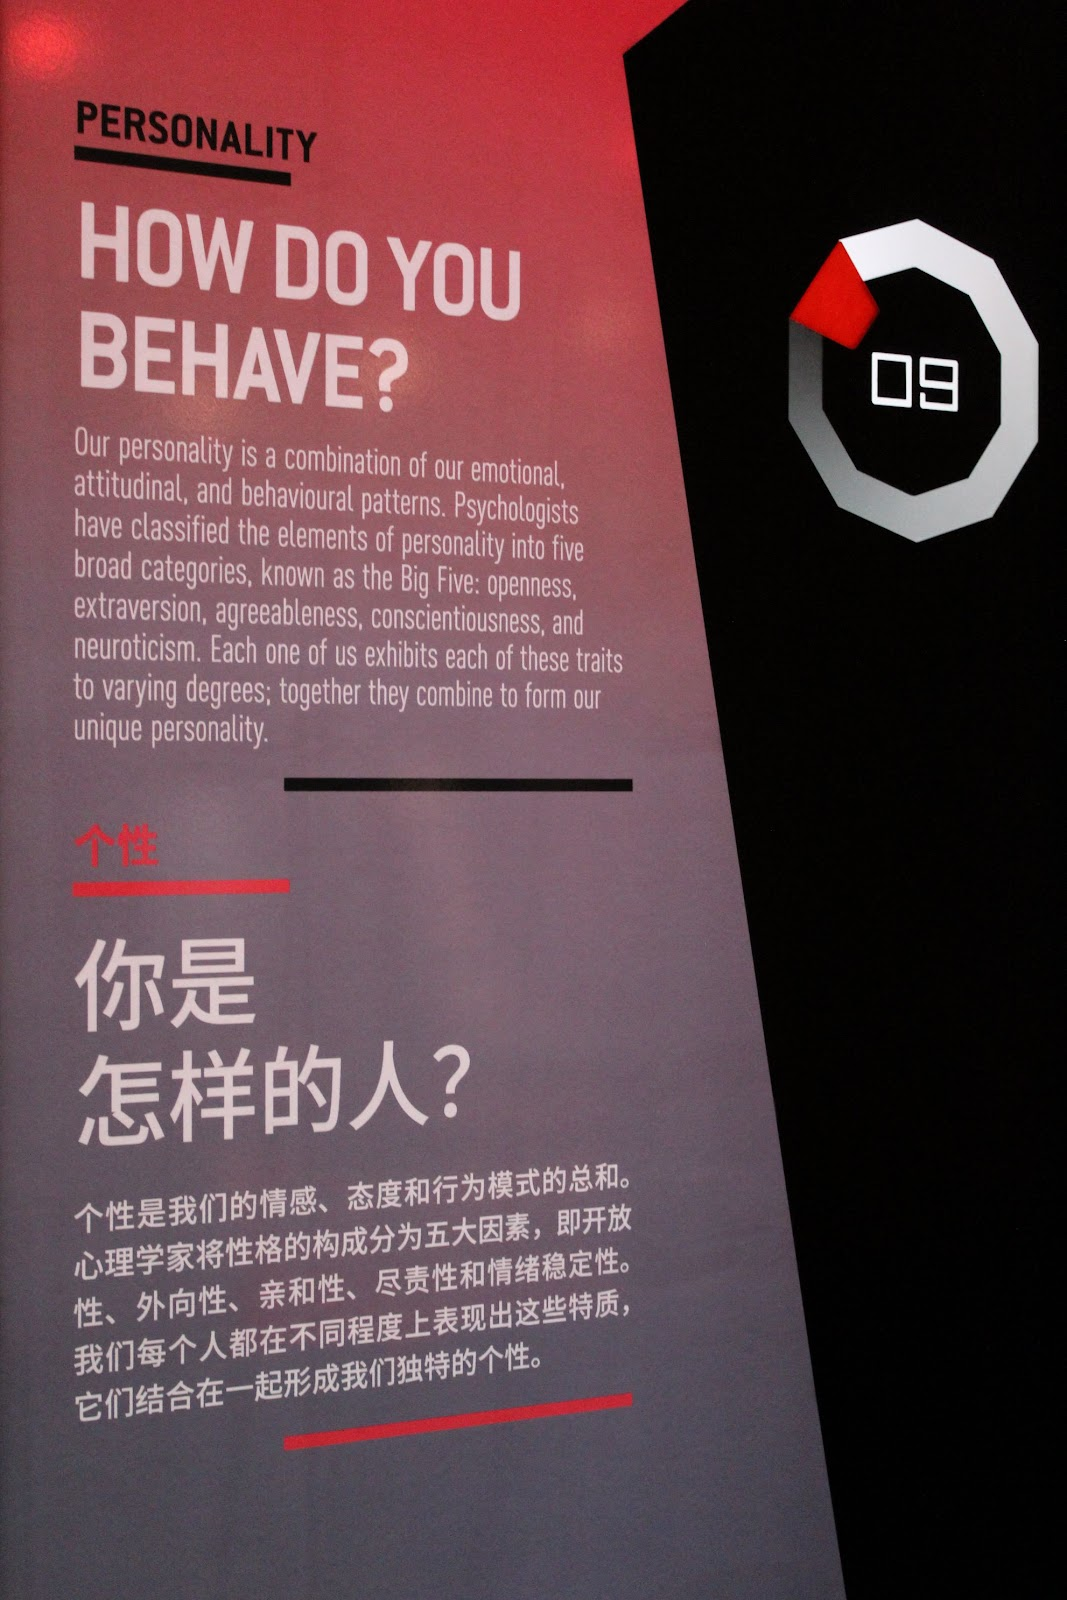 Information panel on personality